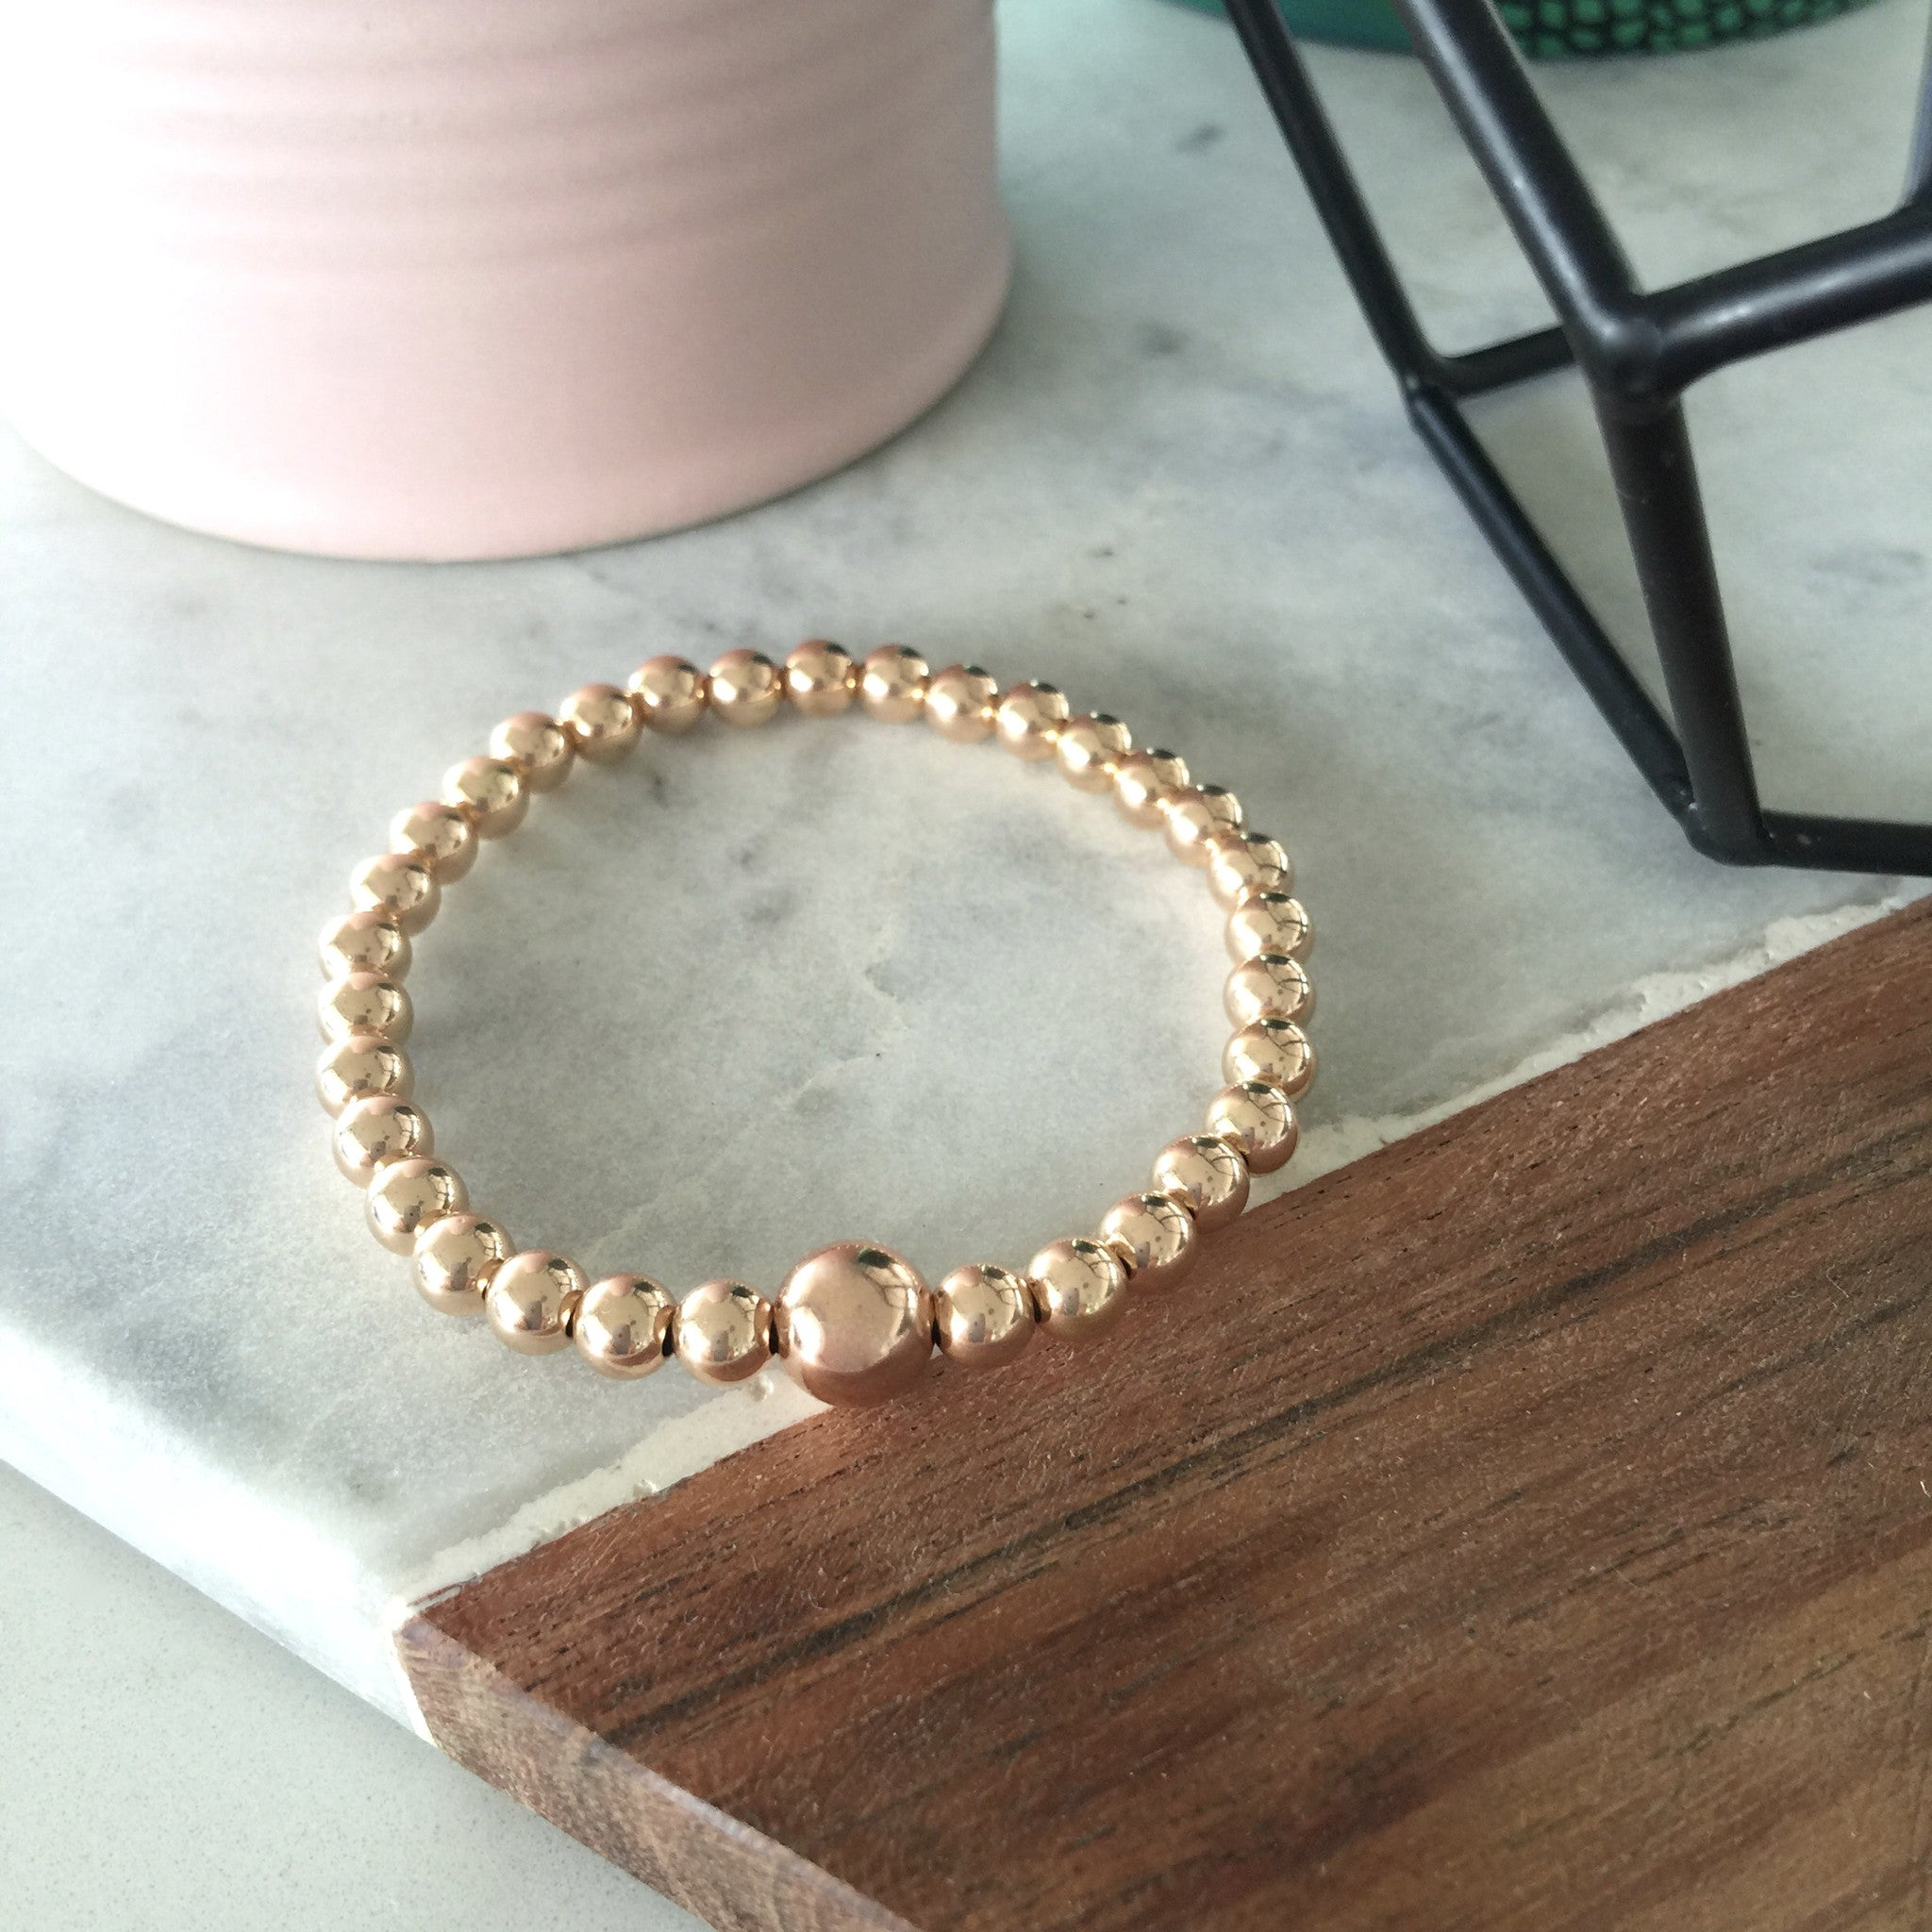 Scarlett Rose Gold Filled 5mm Stretch Ball Bracelet with 8mm Feature Bead